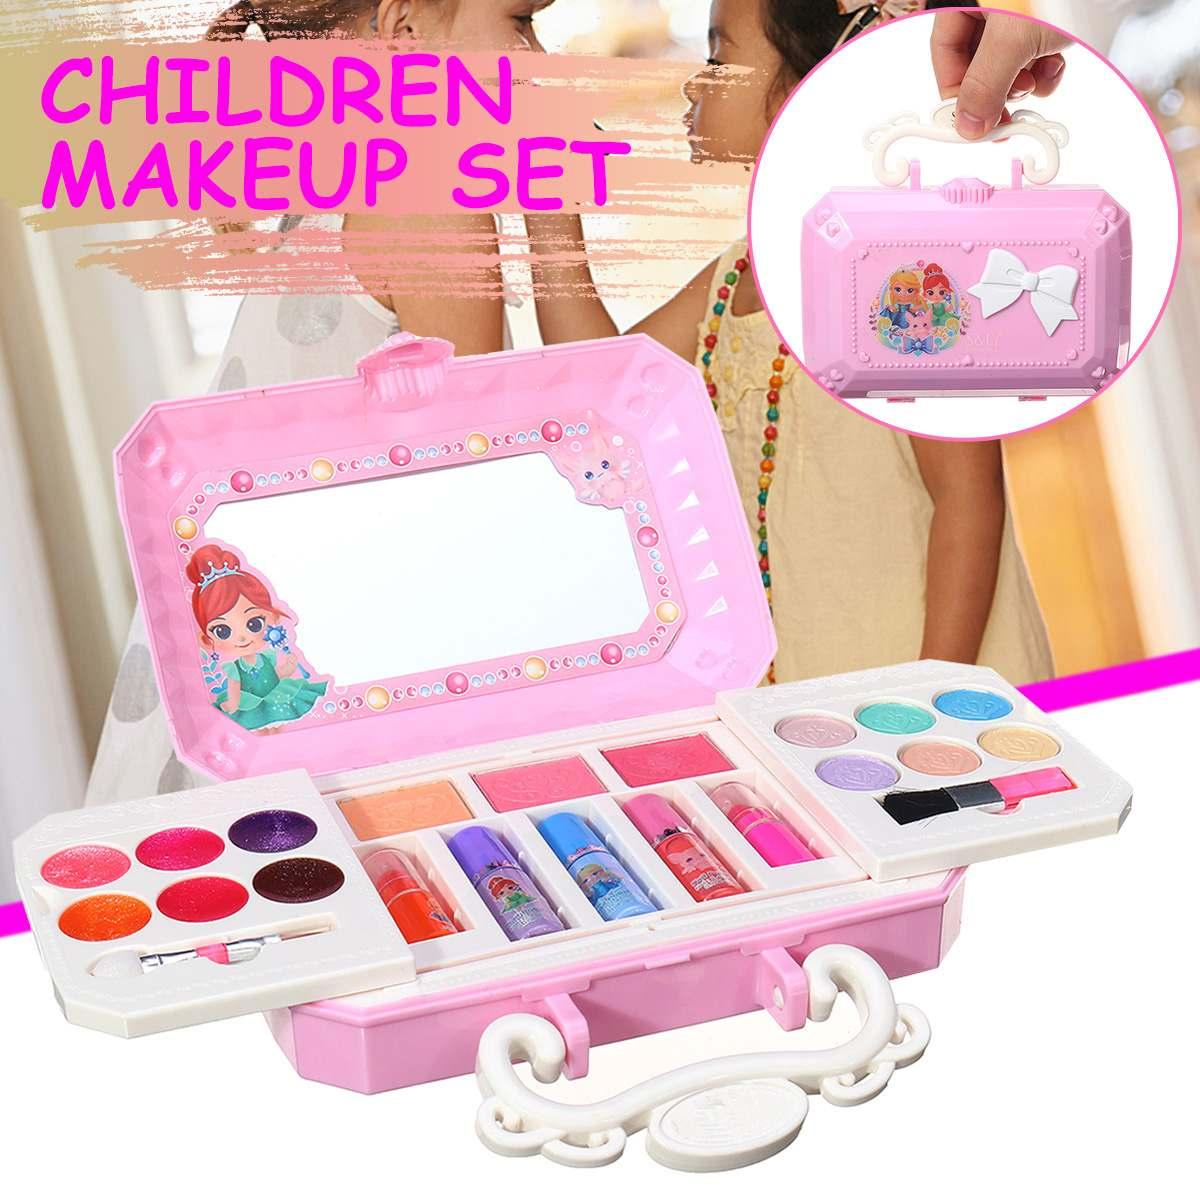 Girls Princess Cosmetics Set Toy Make Up Kits Cute Play House Children Gift Safe No Toxic For Girls Dressing Cosmetic Gift Box